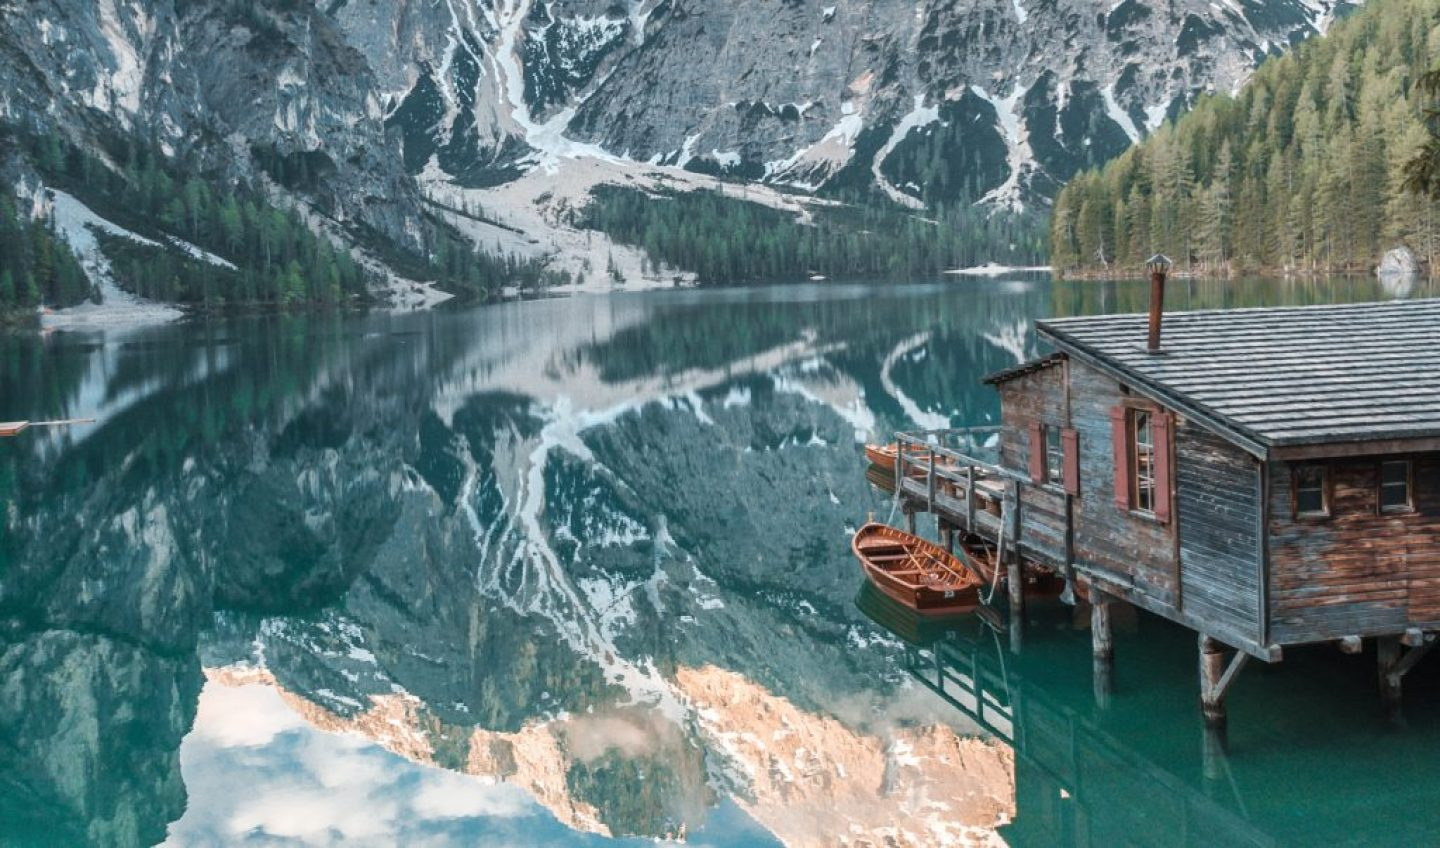 European bucket list destination in Italy, Lago di Braies.